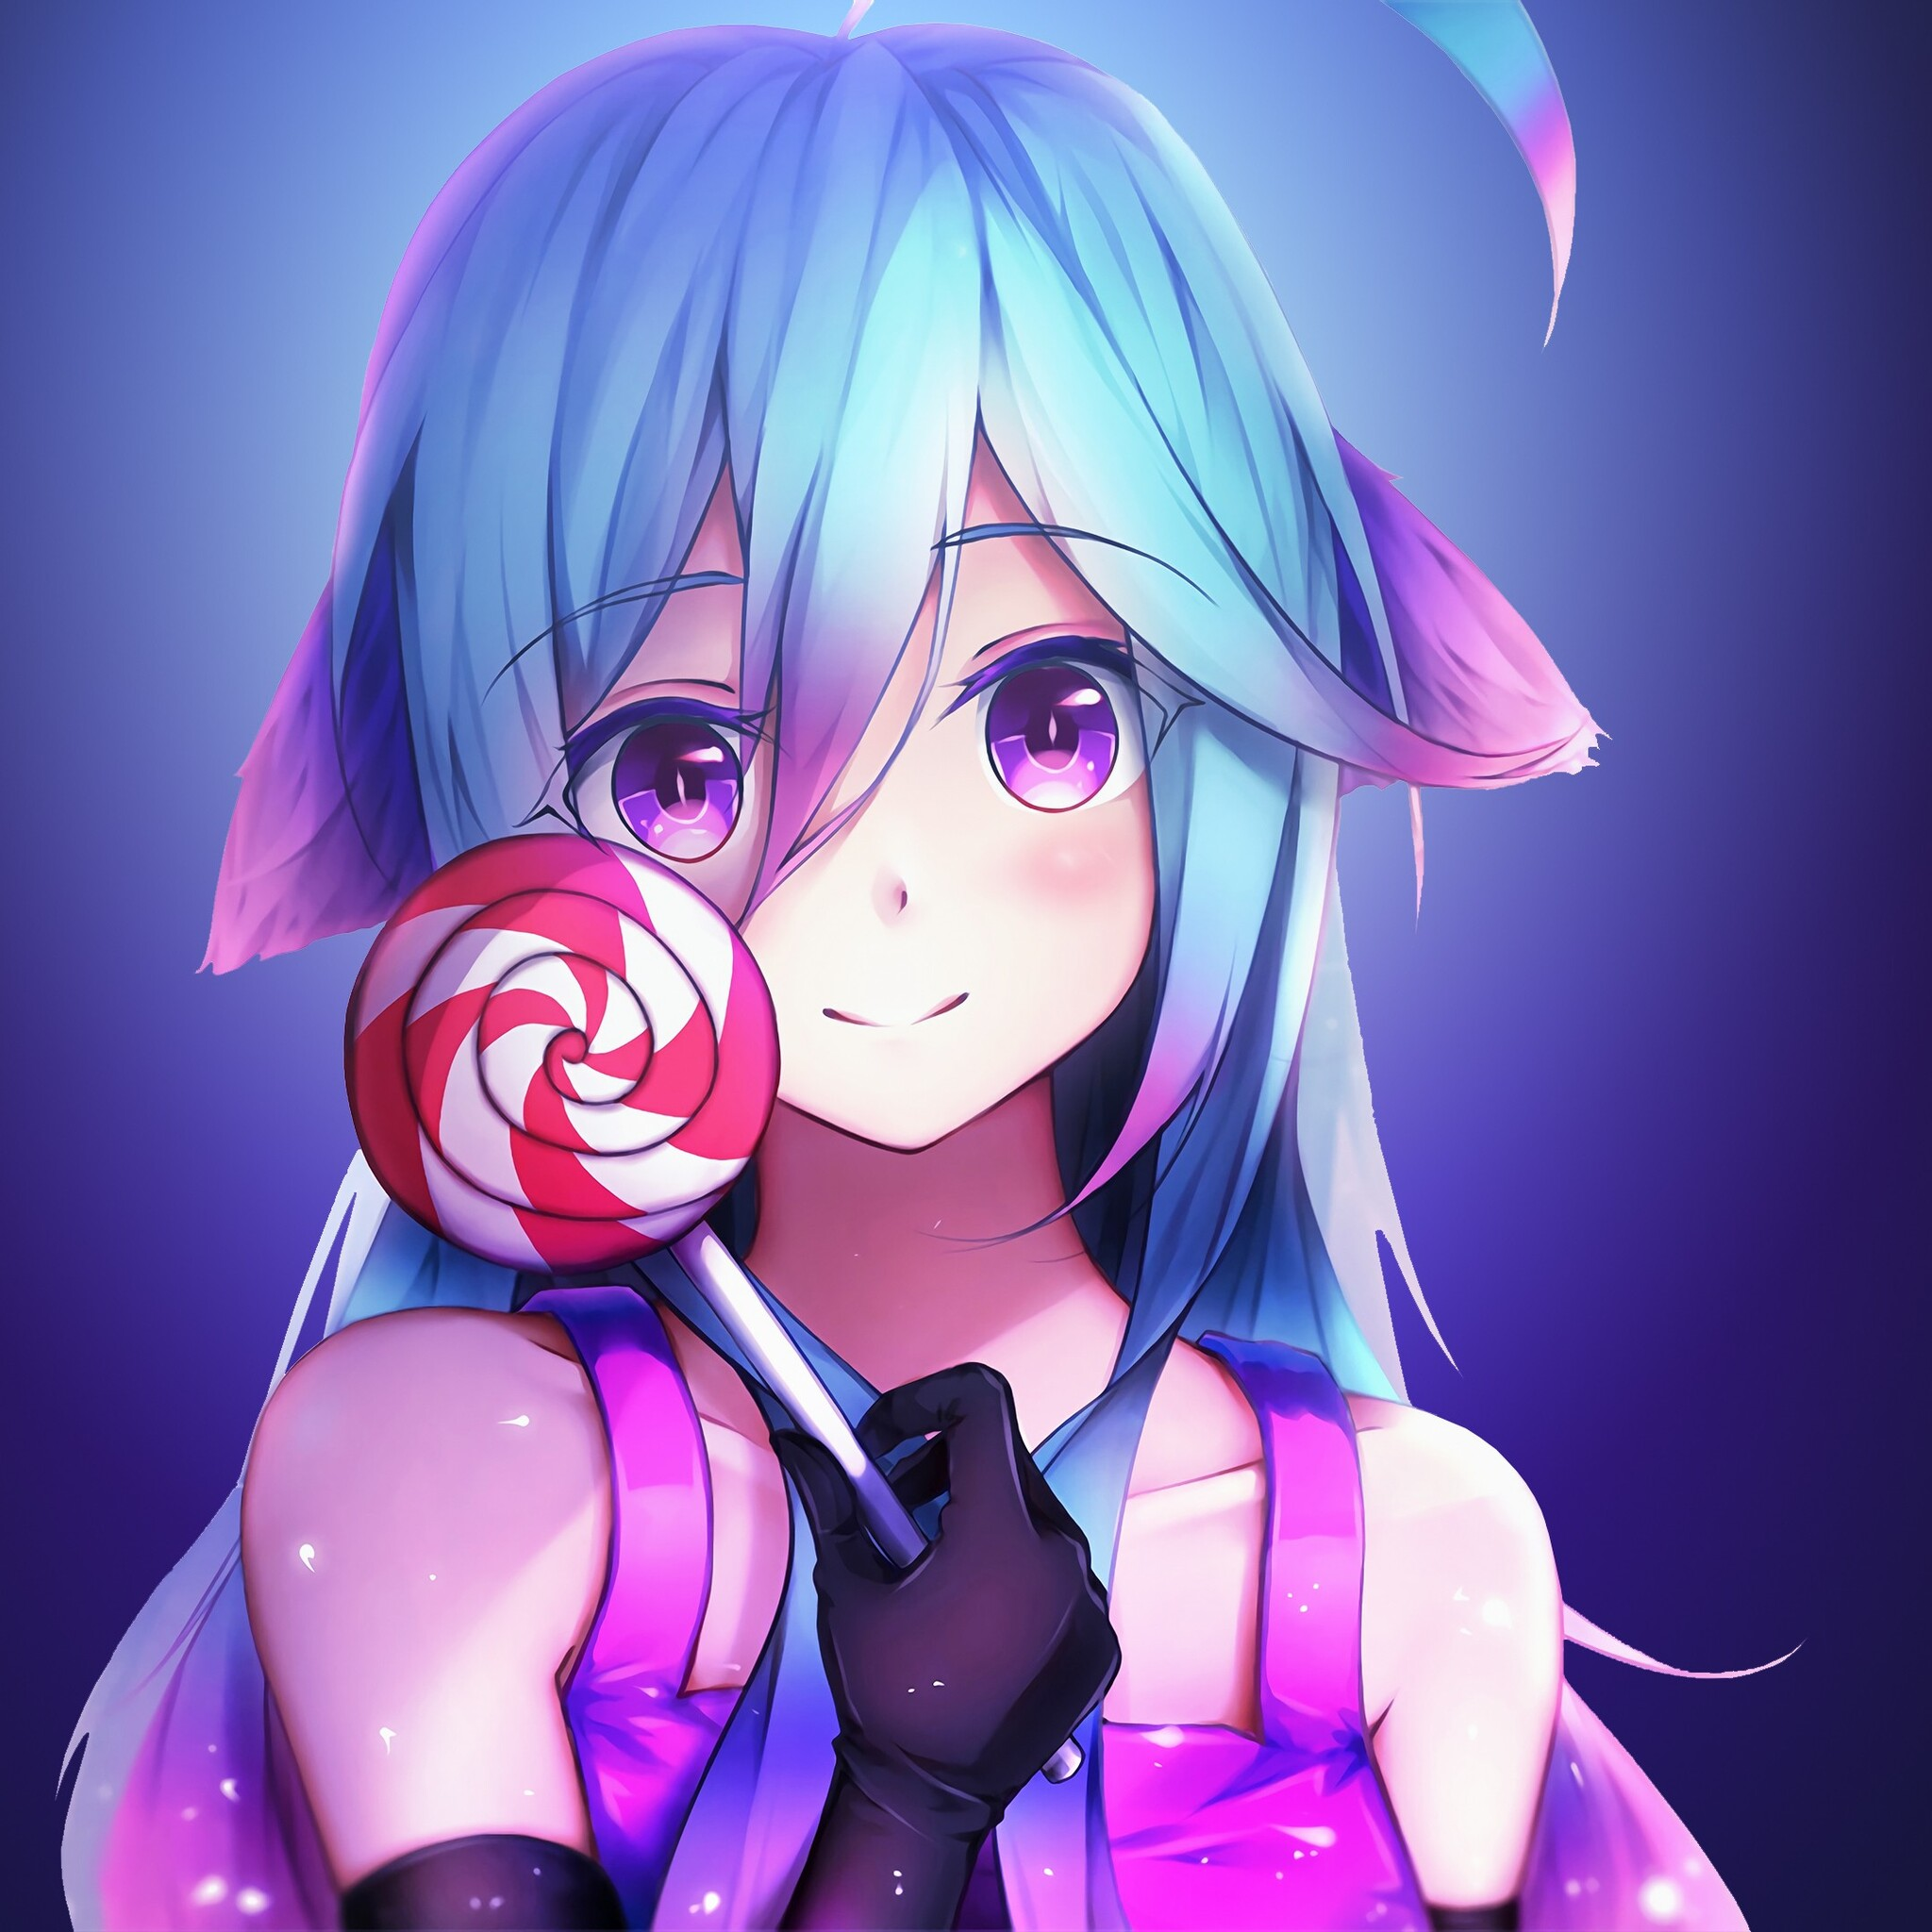 Cute Anime Girl 4k: 2048x2048 Anime Girl Cute Rainbows And Lolipop Ipad Air HD